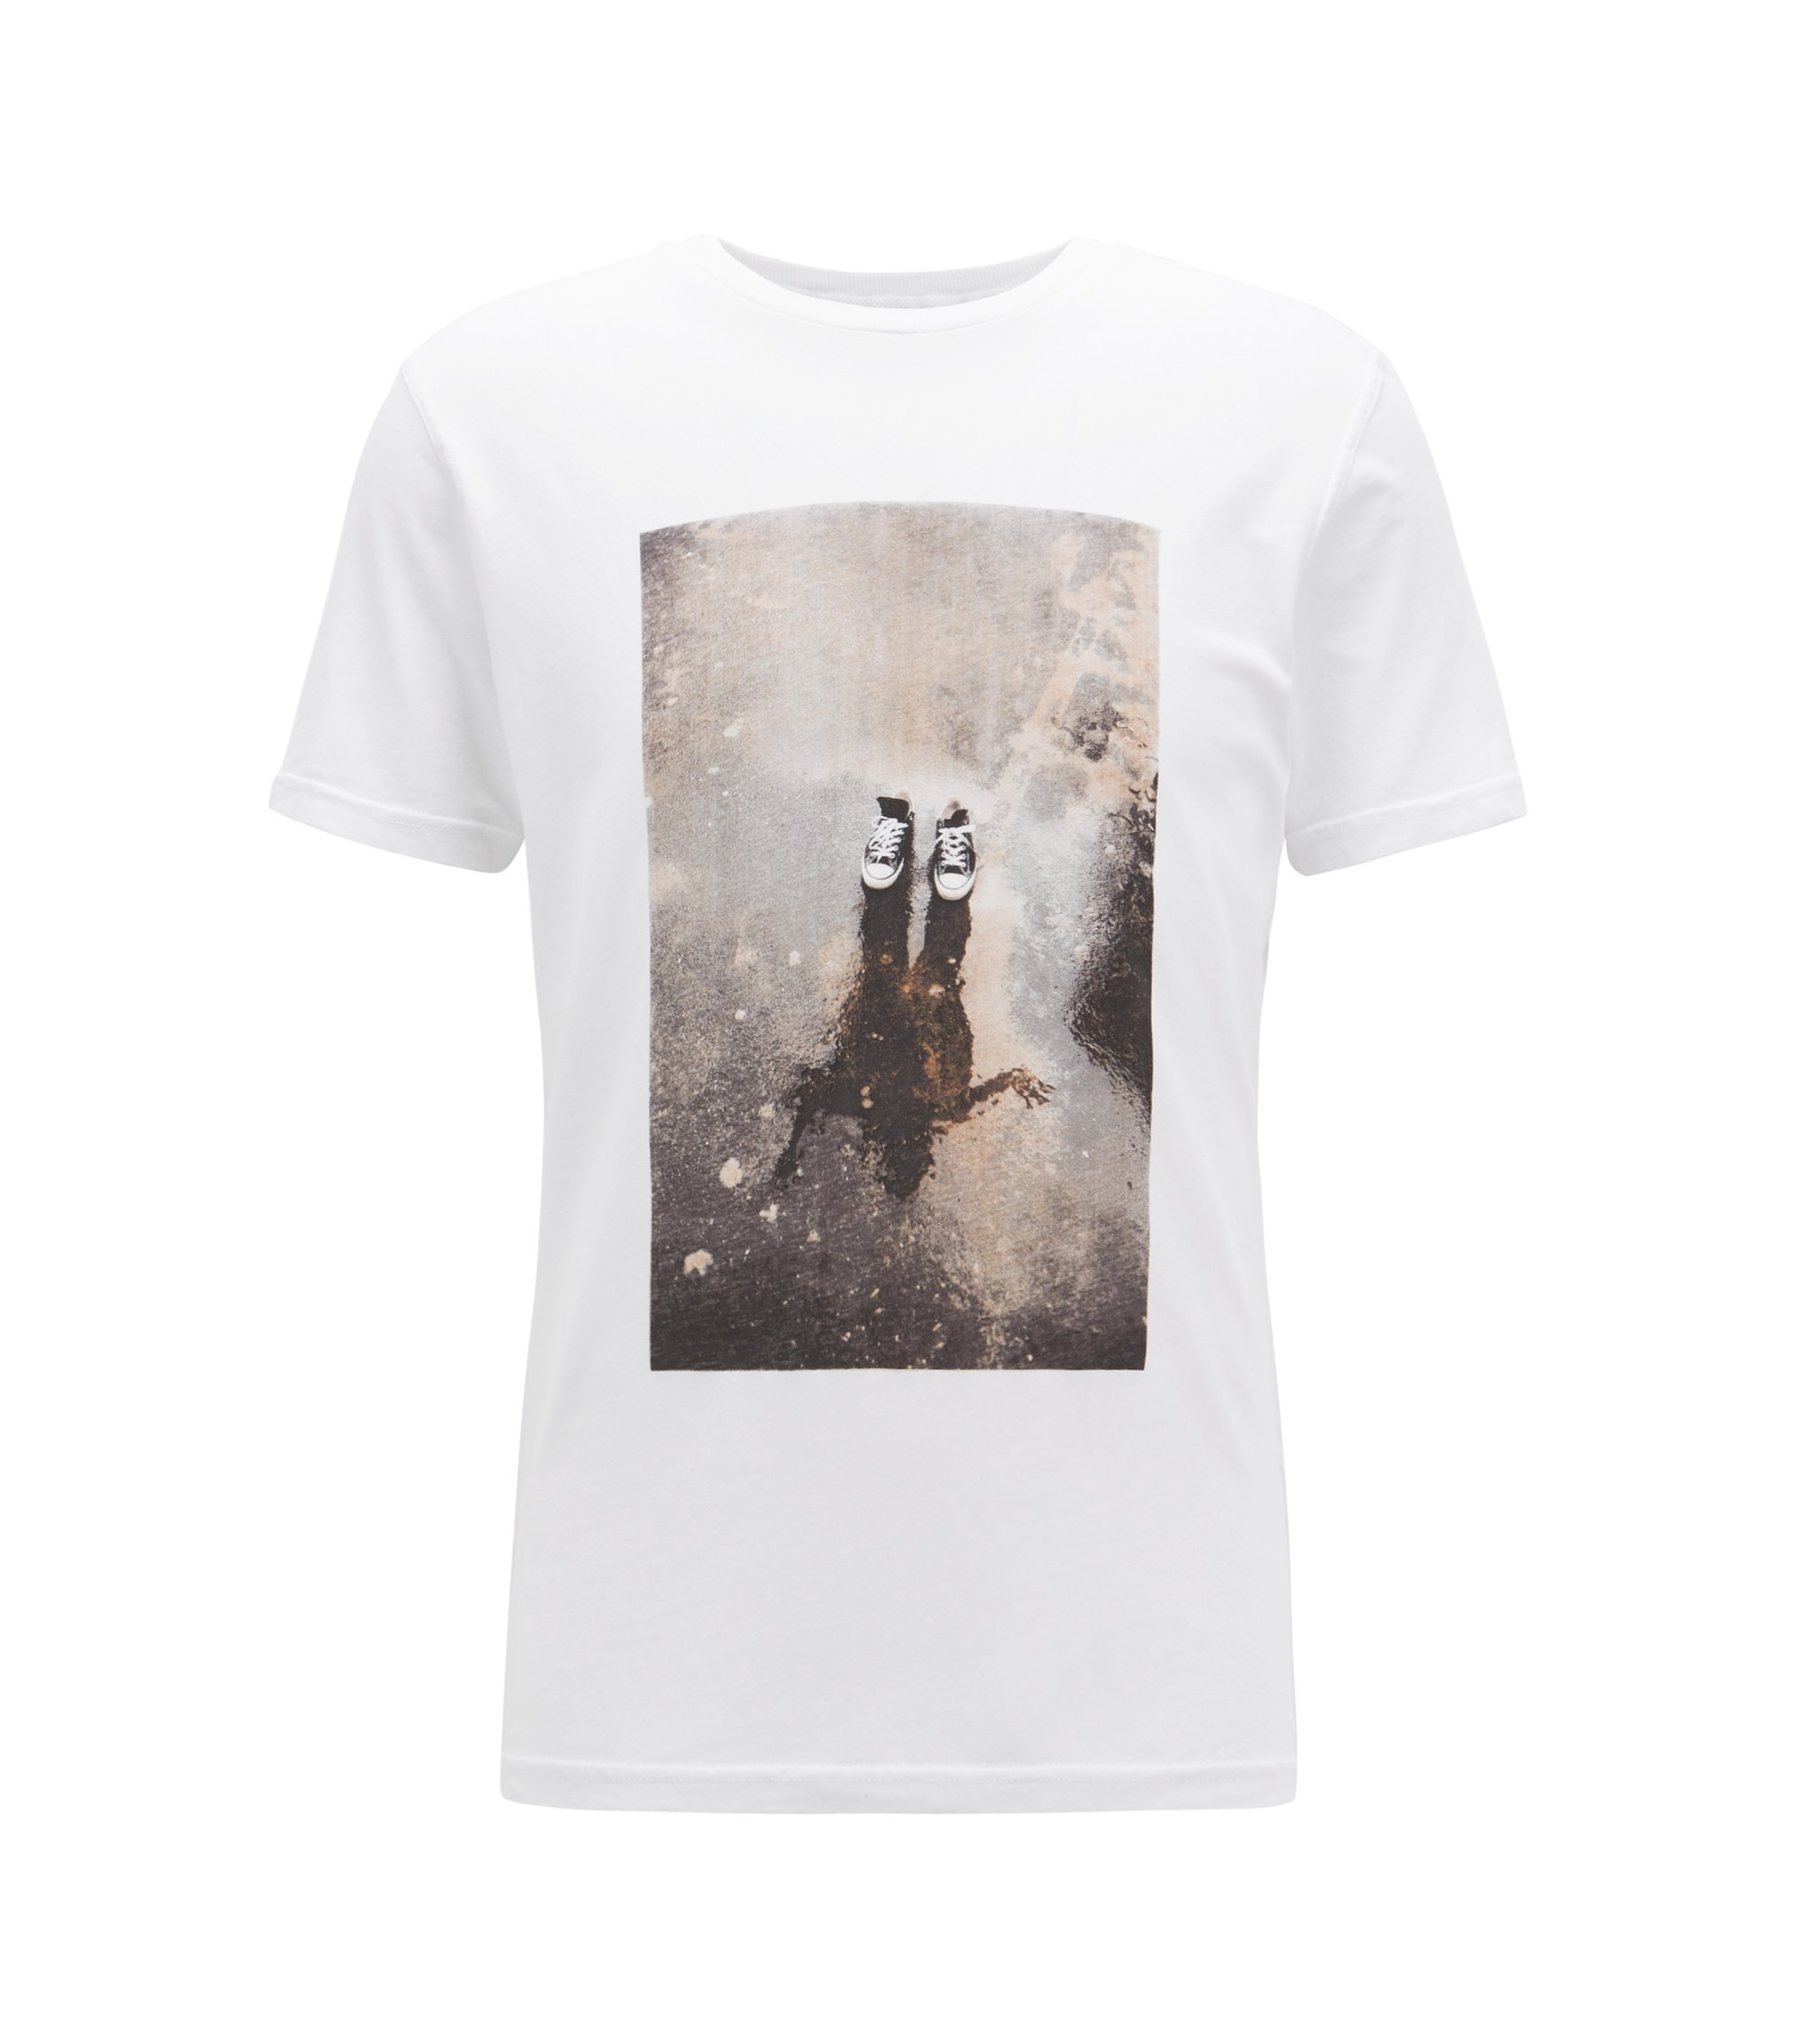 T-shirt graphique Relaxed Fit en jersey de coton recot²®, Blanc